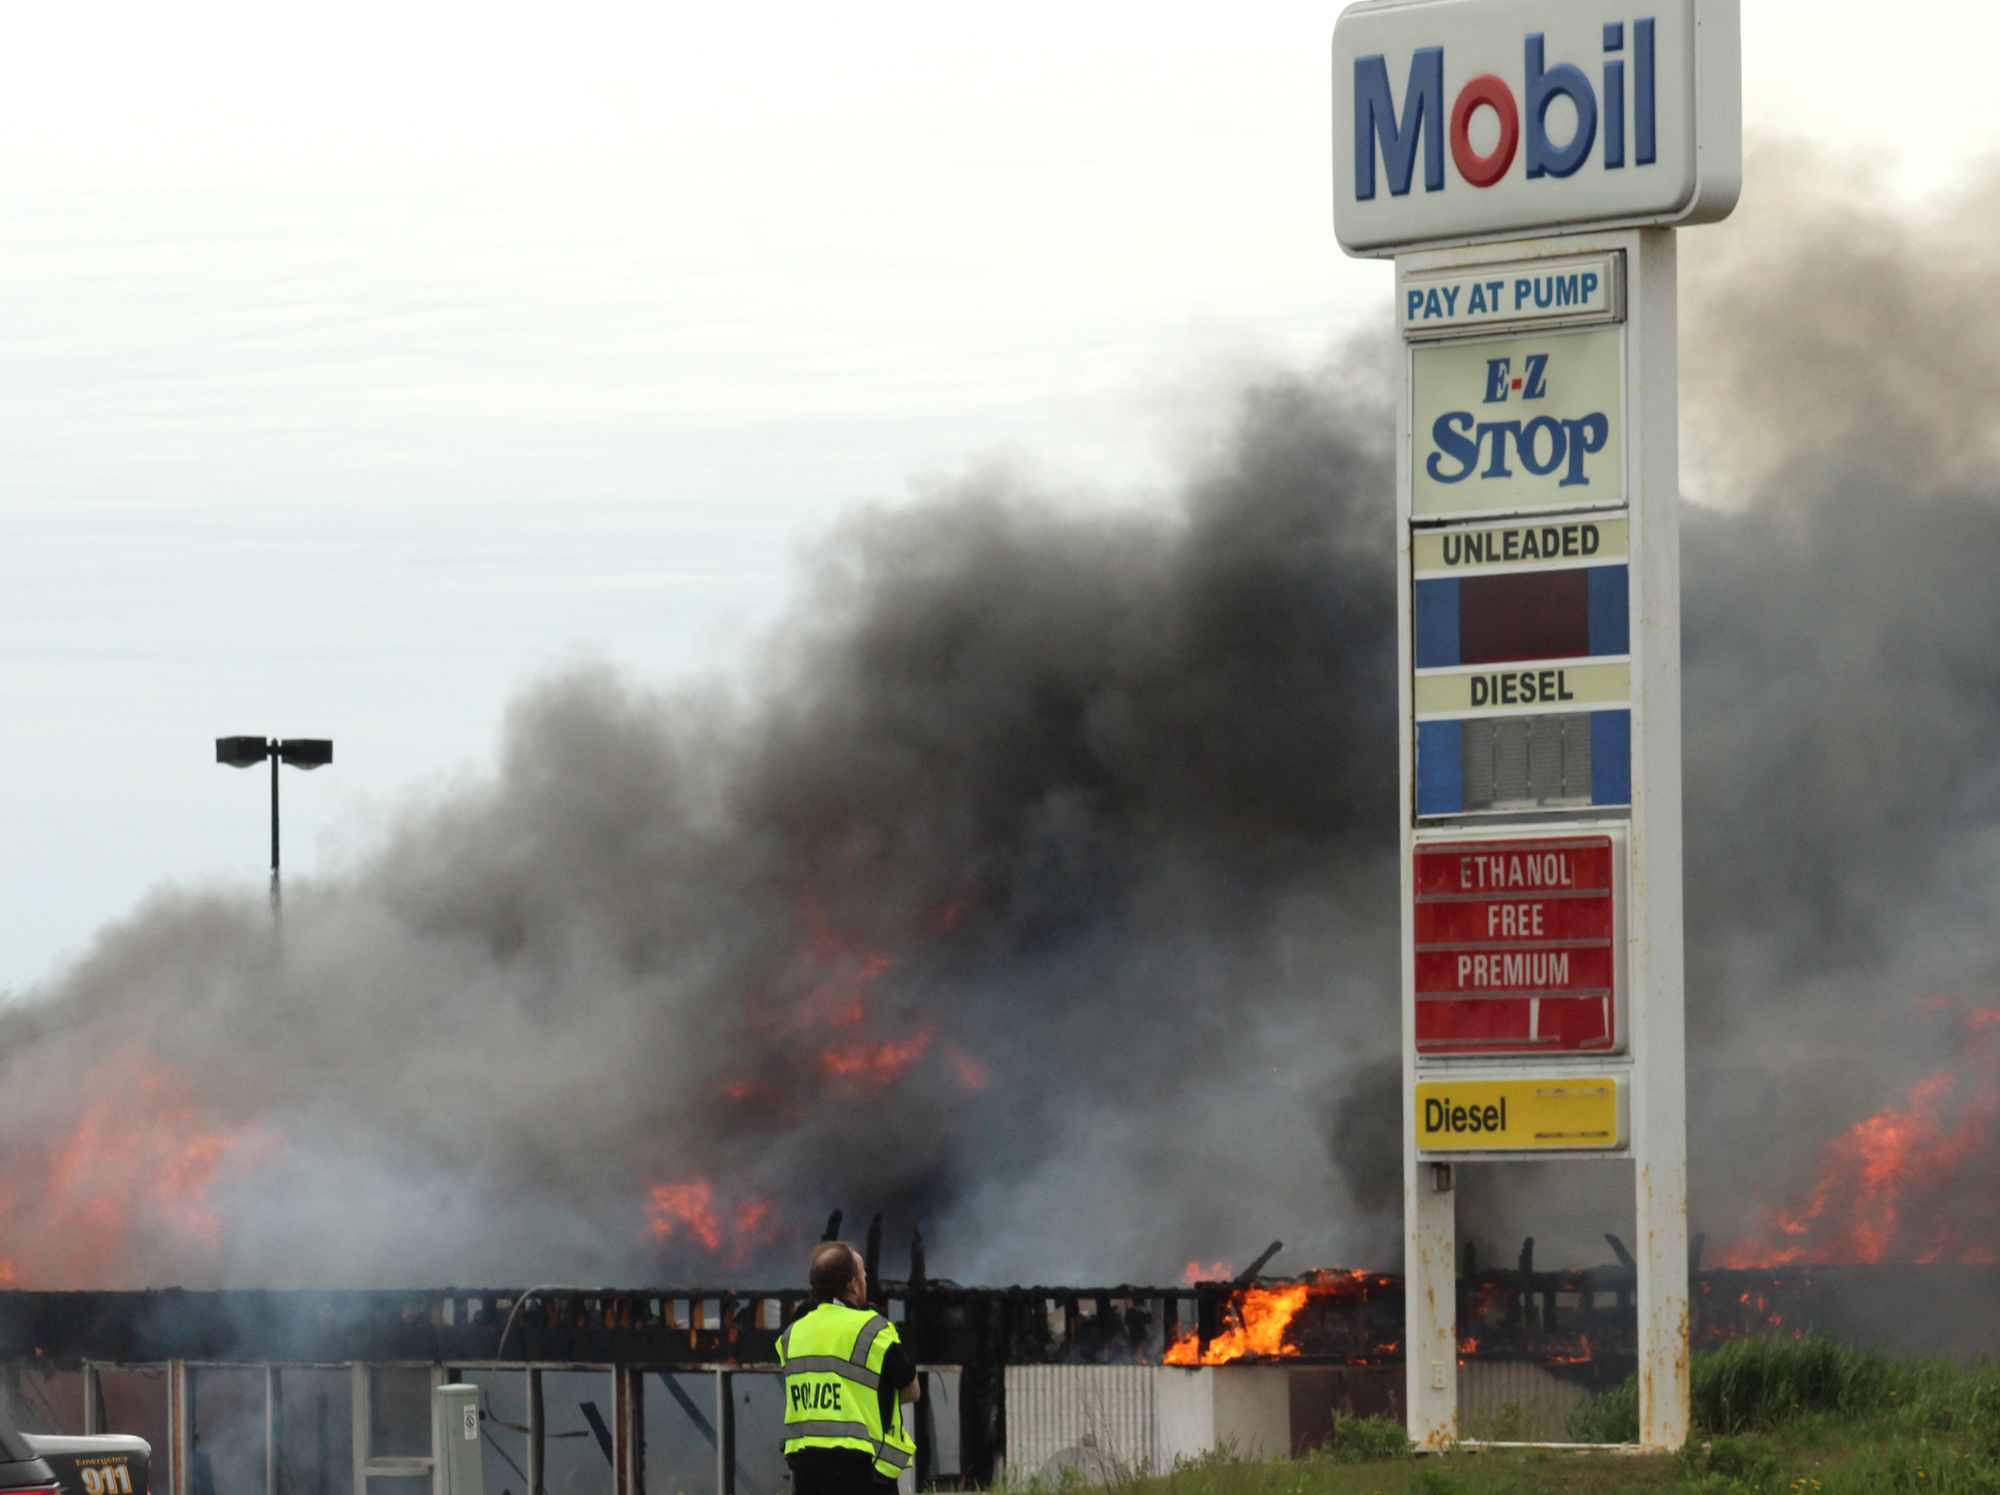 IM firefighter treated for burns and released after being trapped in gas station blaze  News